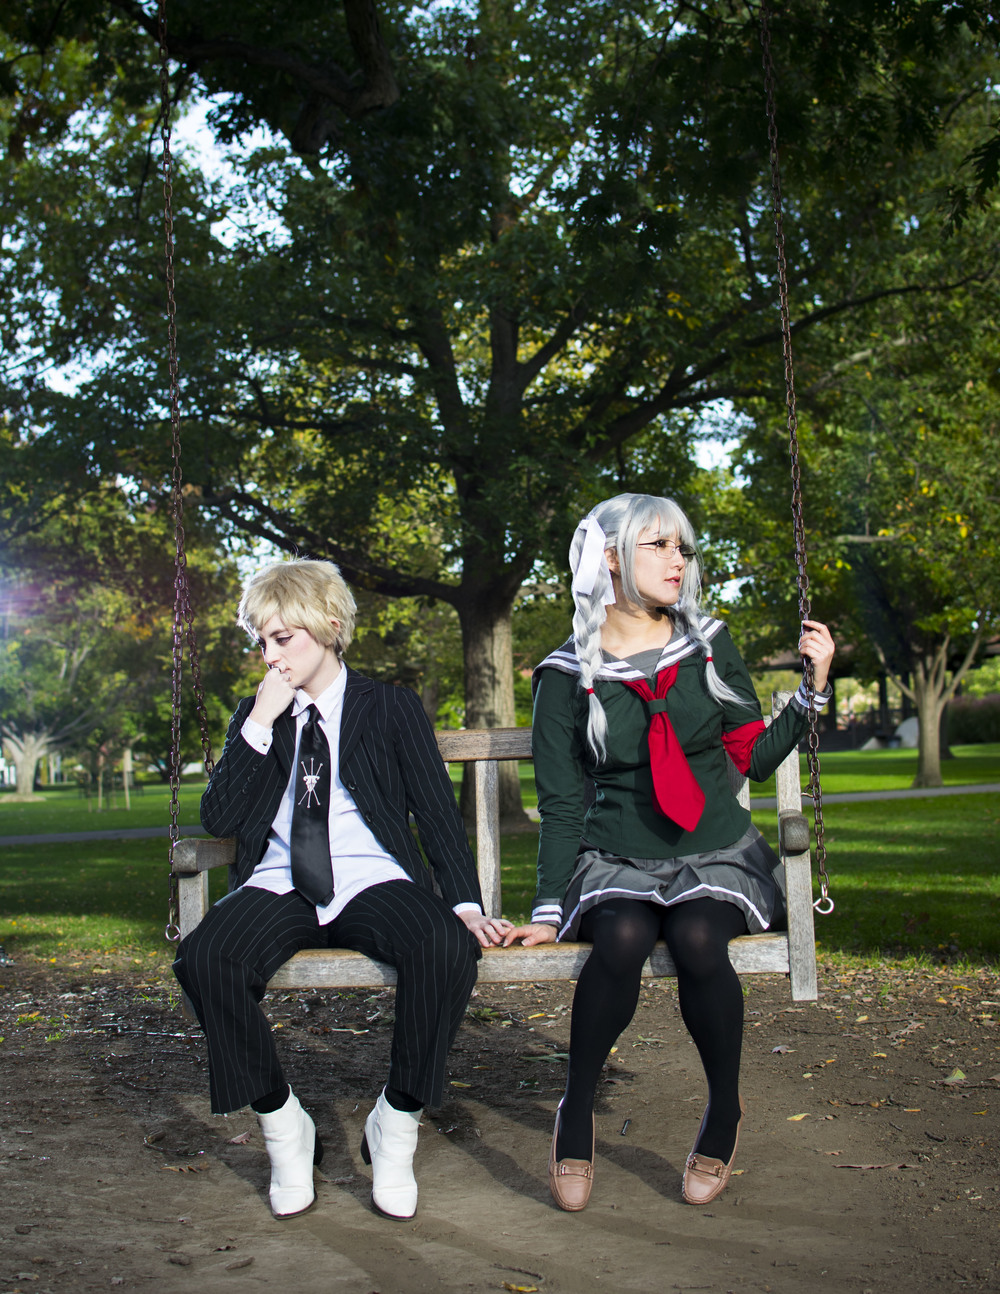 My absolute favorite photo of Lemley and myself as Fuyuhiko Kuzuryuu and Peko Pekoyama from SDR2!